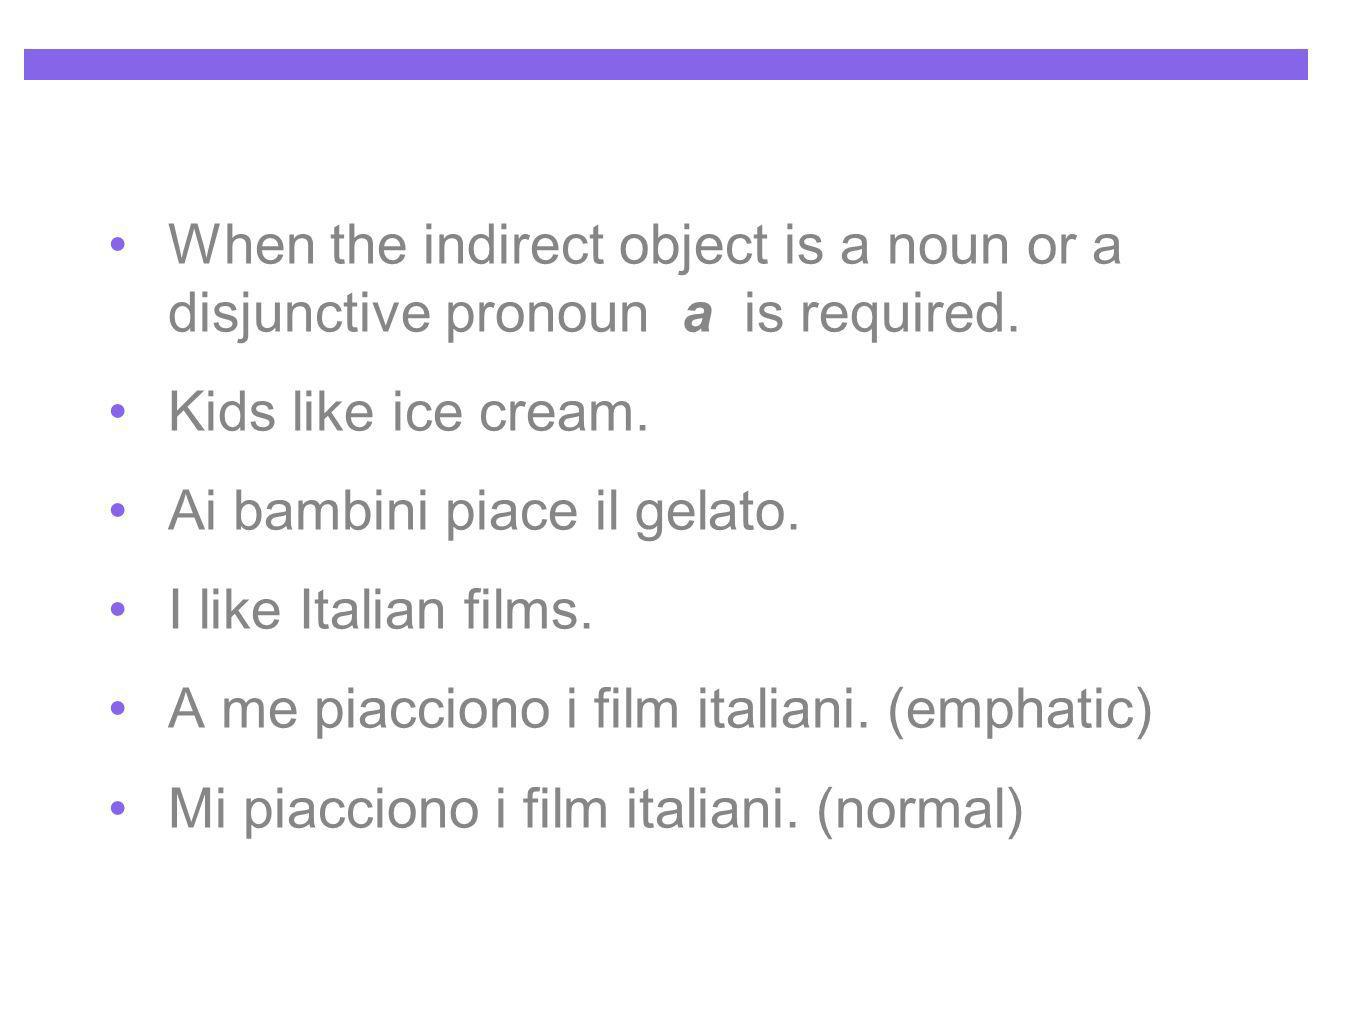 When the indirect object is a noun or a disjunctive pronoun a is required. Kids like ice cream. Ai bambini piace il gelato. I like Italian films. A me